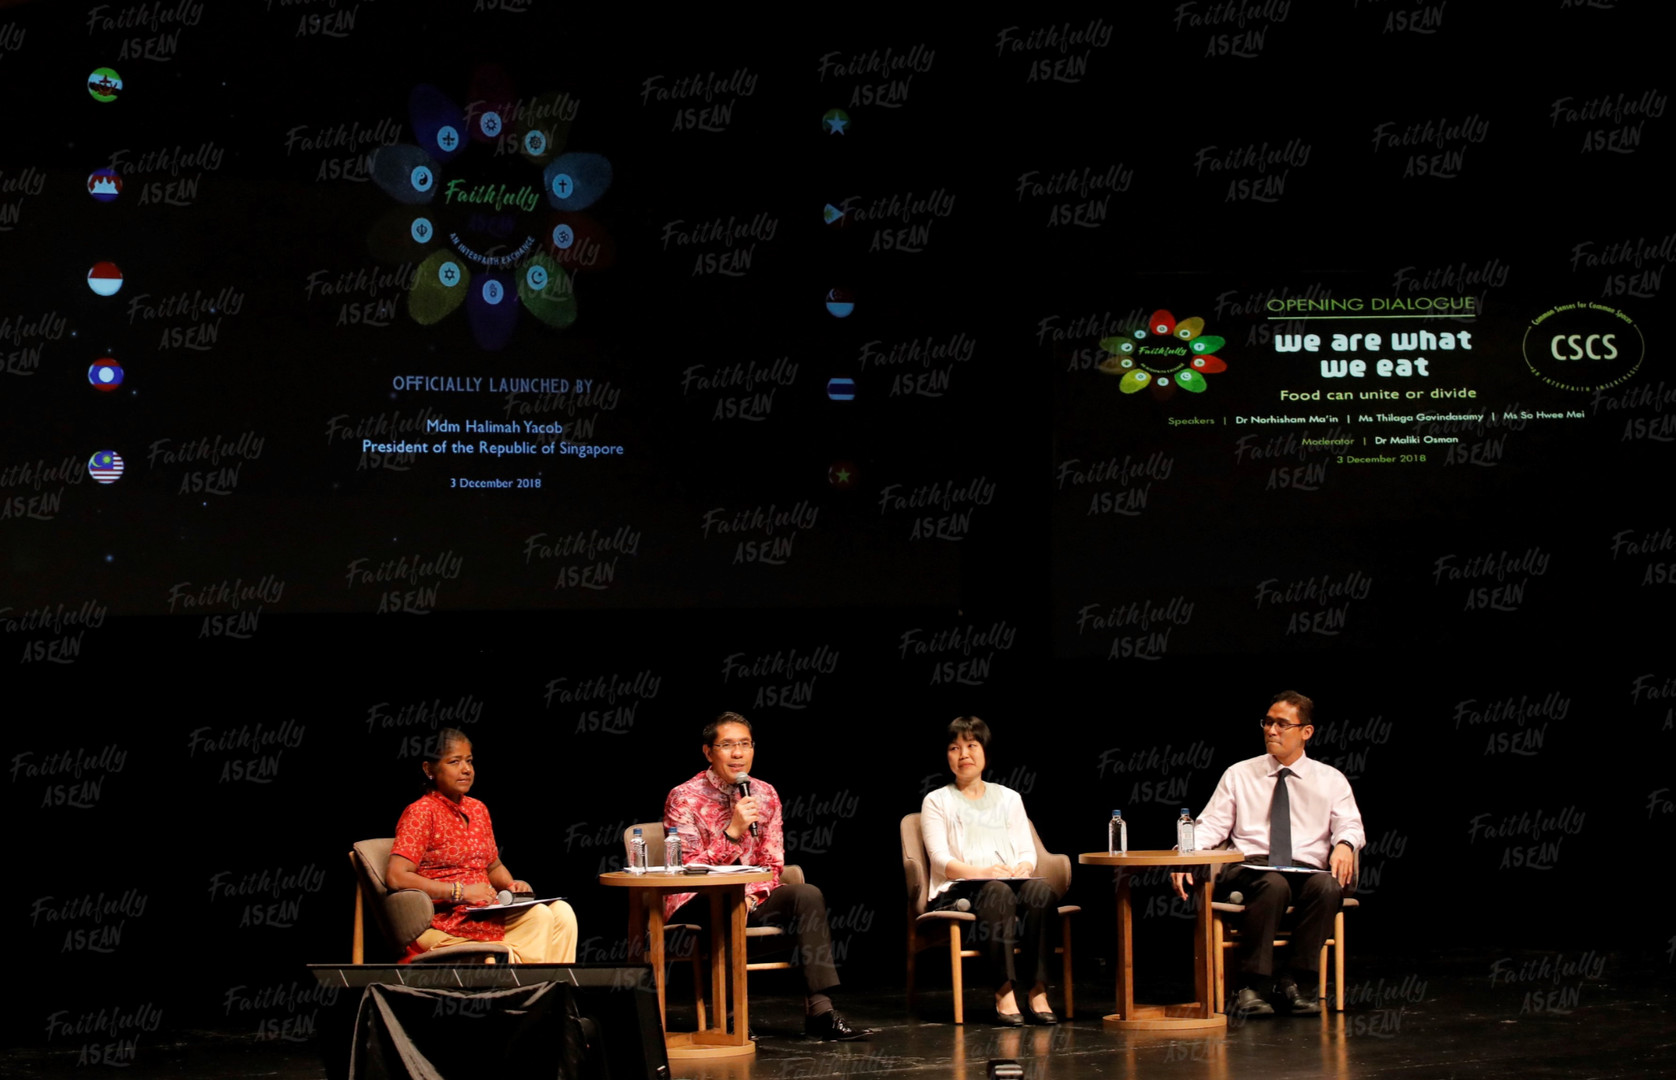 The 'Common Senses for Common Spaces' (CSCS) interfaith albeit non-theological dialogue series – conceived and curated by Singaporean Social Cohesion and Resilience Catalyst, was showcased at the inaugural FA Opening and Closing dialogues.  The Opening Dialogue entitled 'We are What We Eat' hosted a panel of faith practitioners from different religions and professions – a Muslim geriatric consultant, a Buddhist nutritionist and a Hindu physiotherapist, who shared on their respective faith's unique dietary observances, along with common dietary habits and benefits, based on science and spirituality, and discussed the health, religious and social impacts of food on communities.